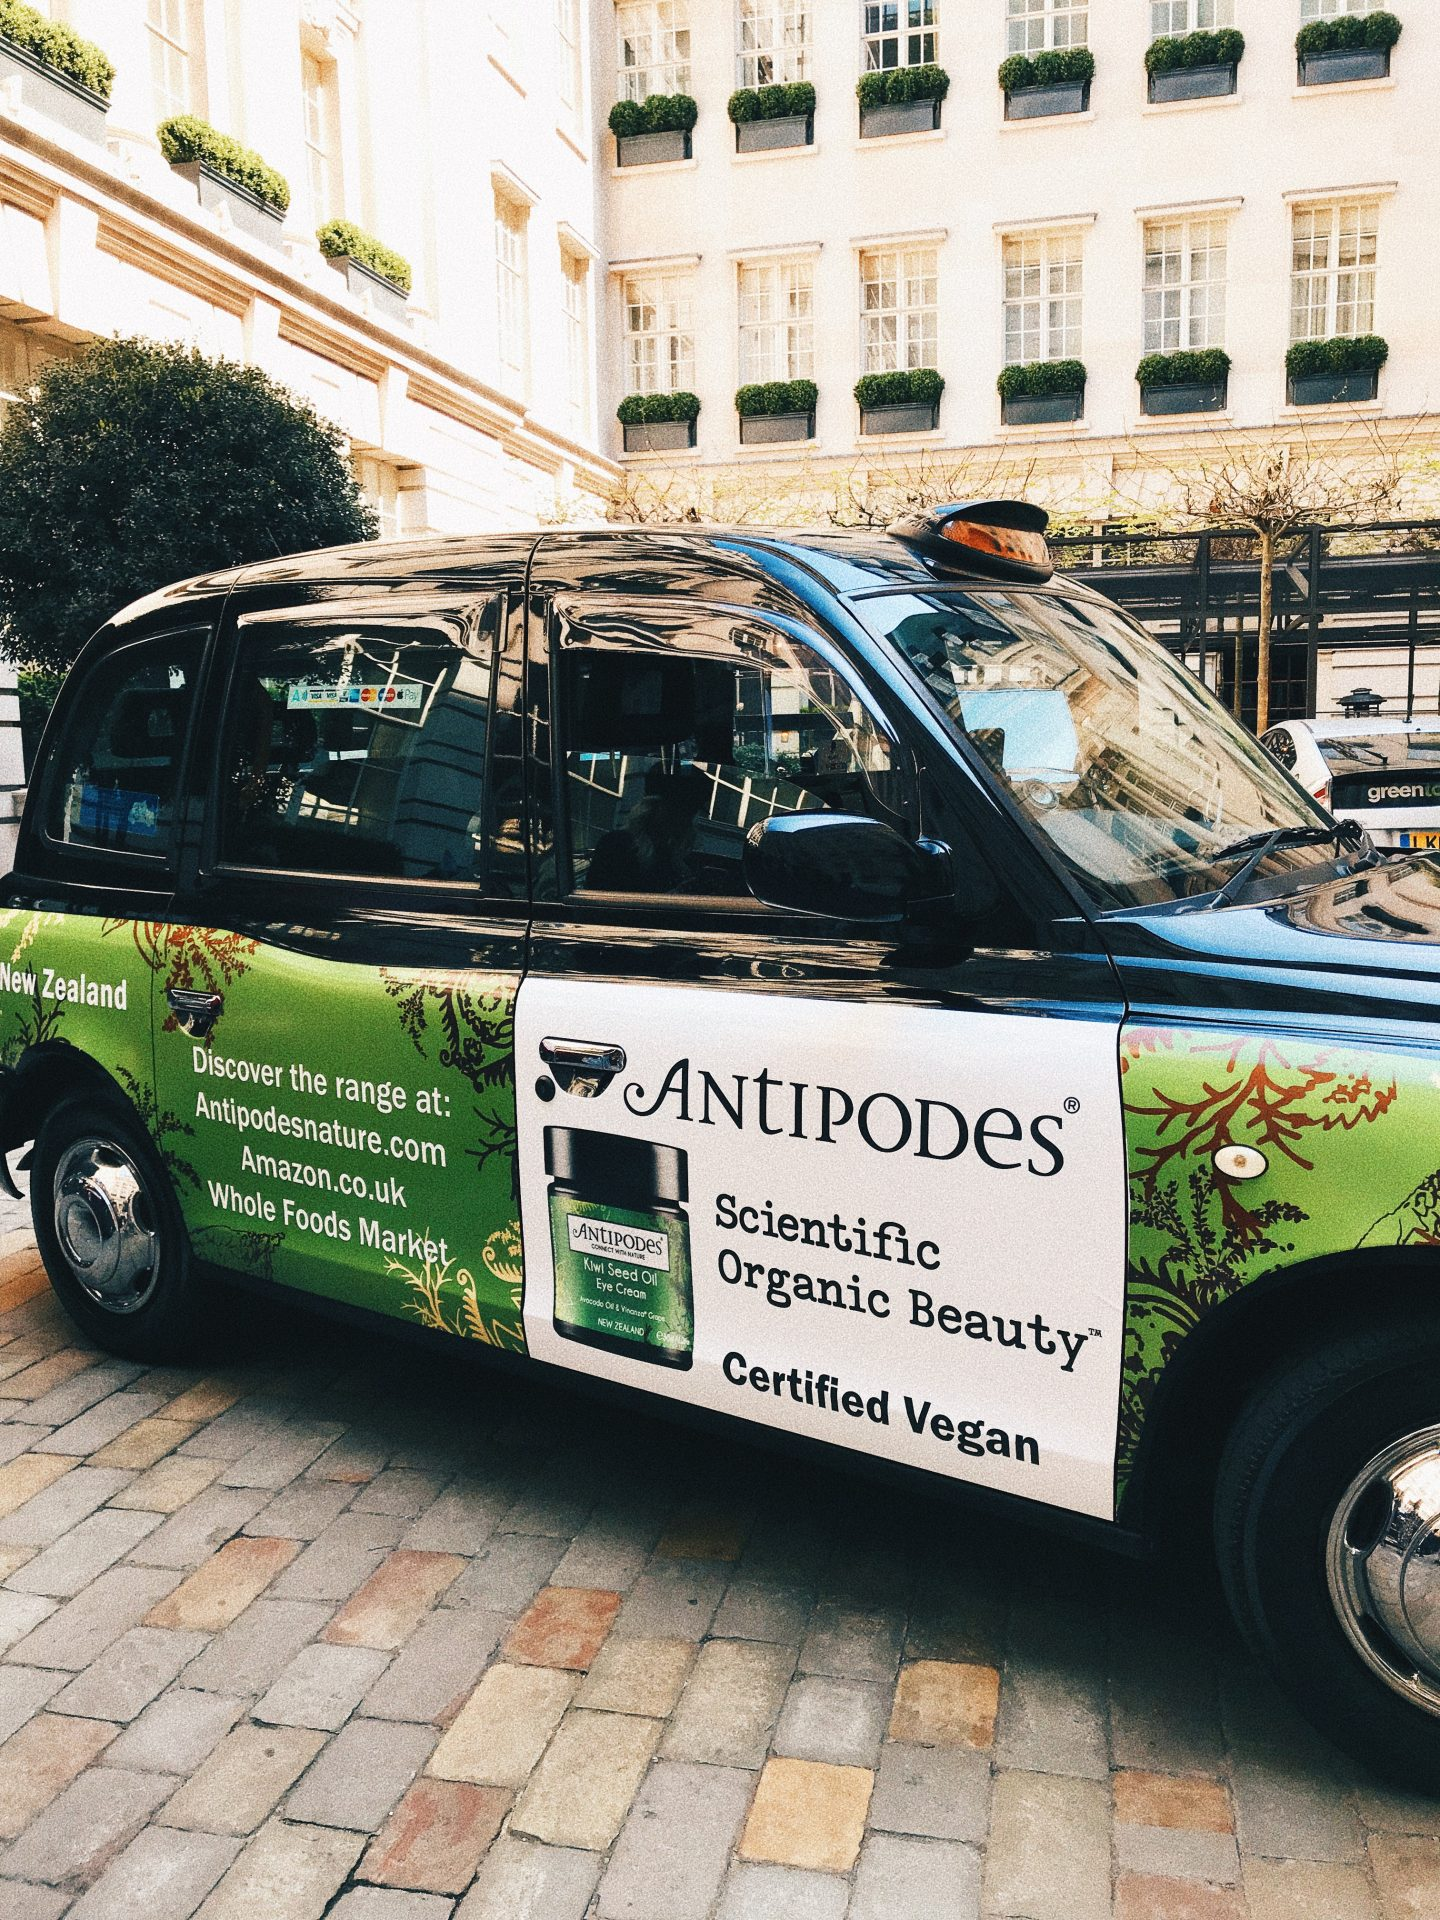 Antipodes scientific organic beauty